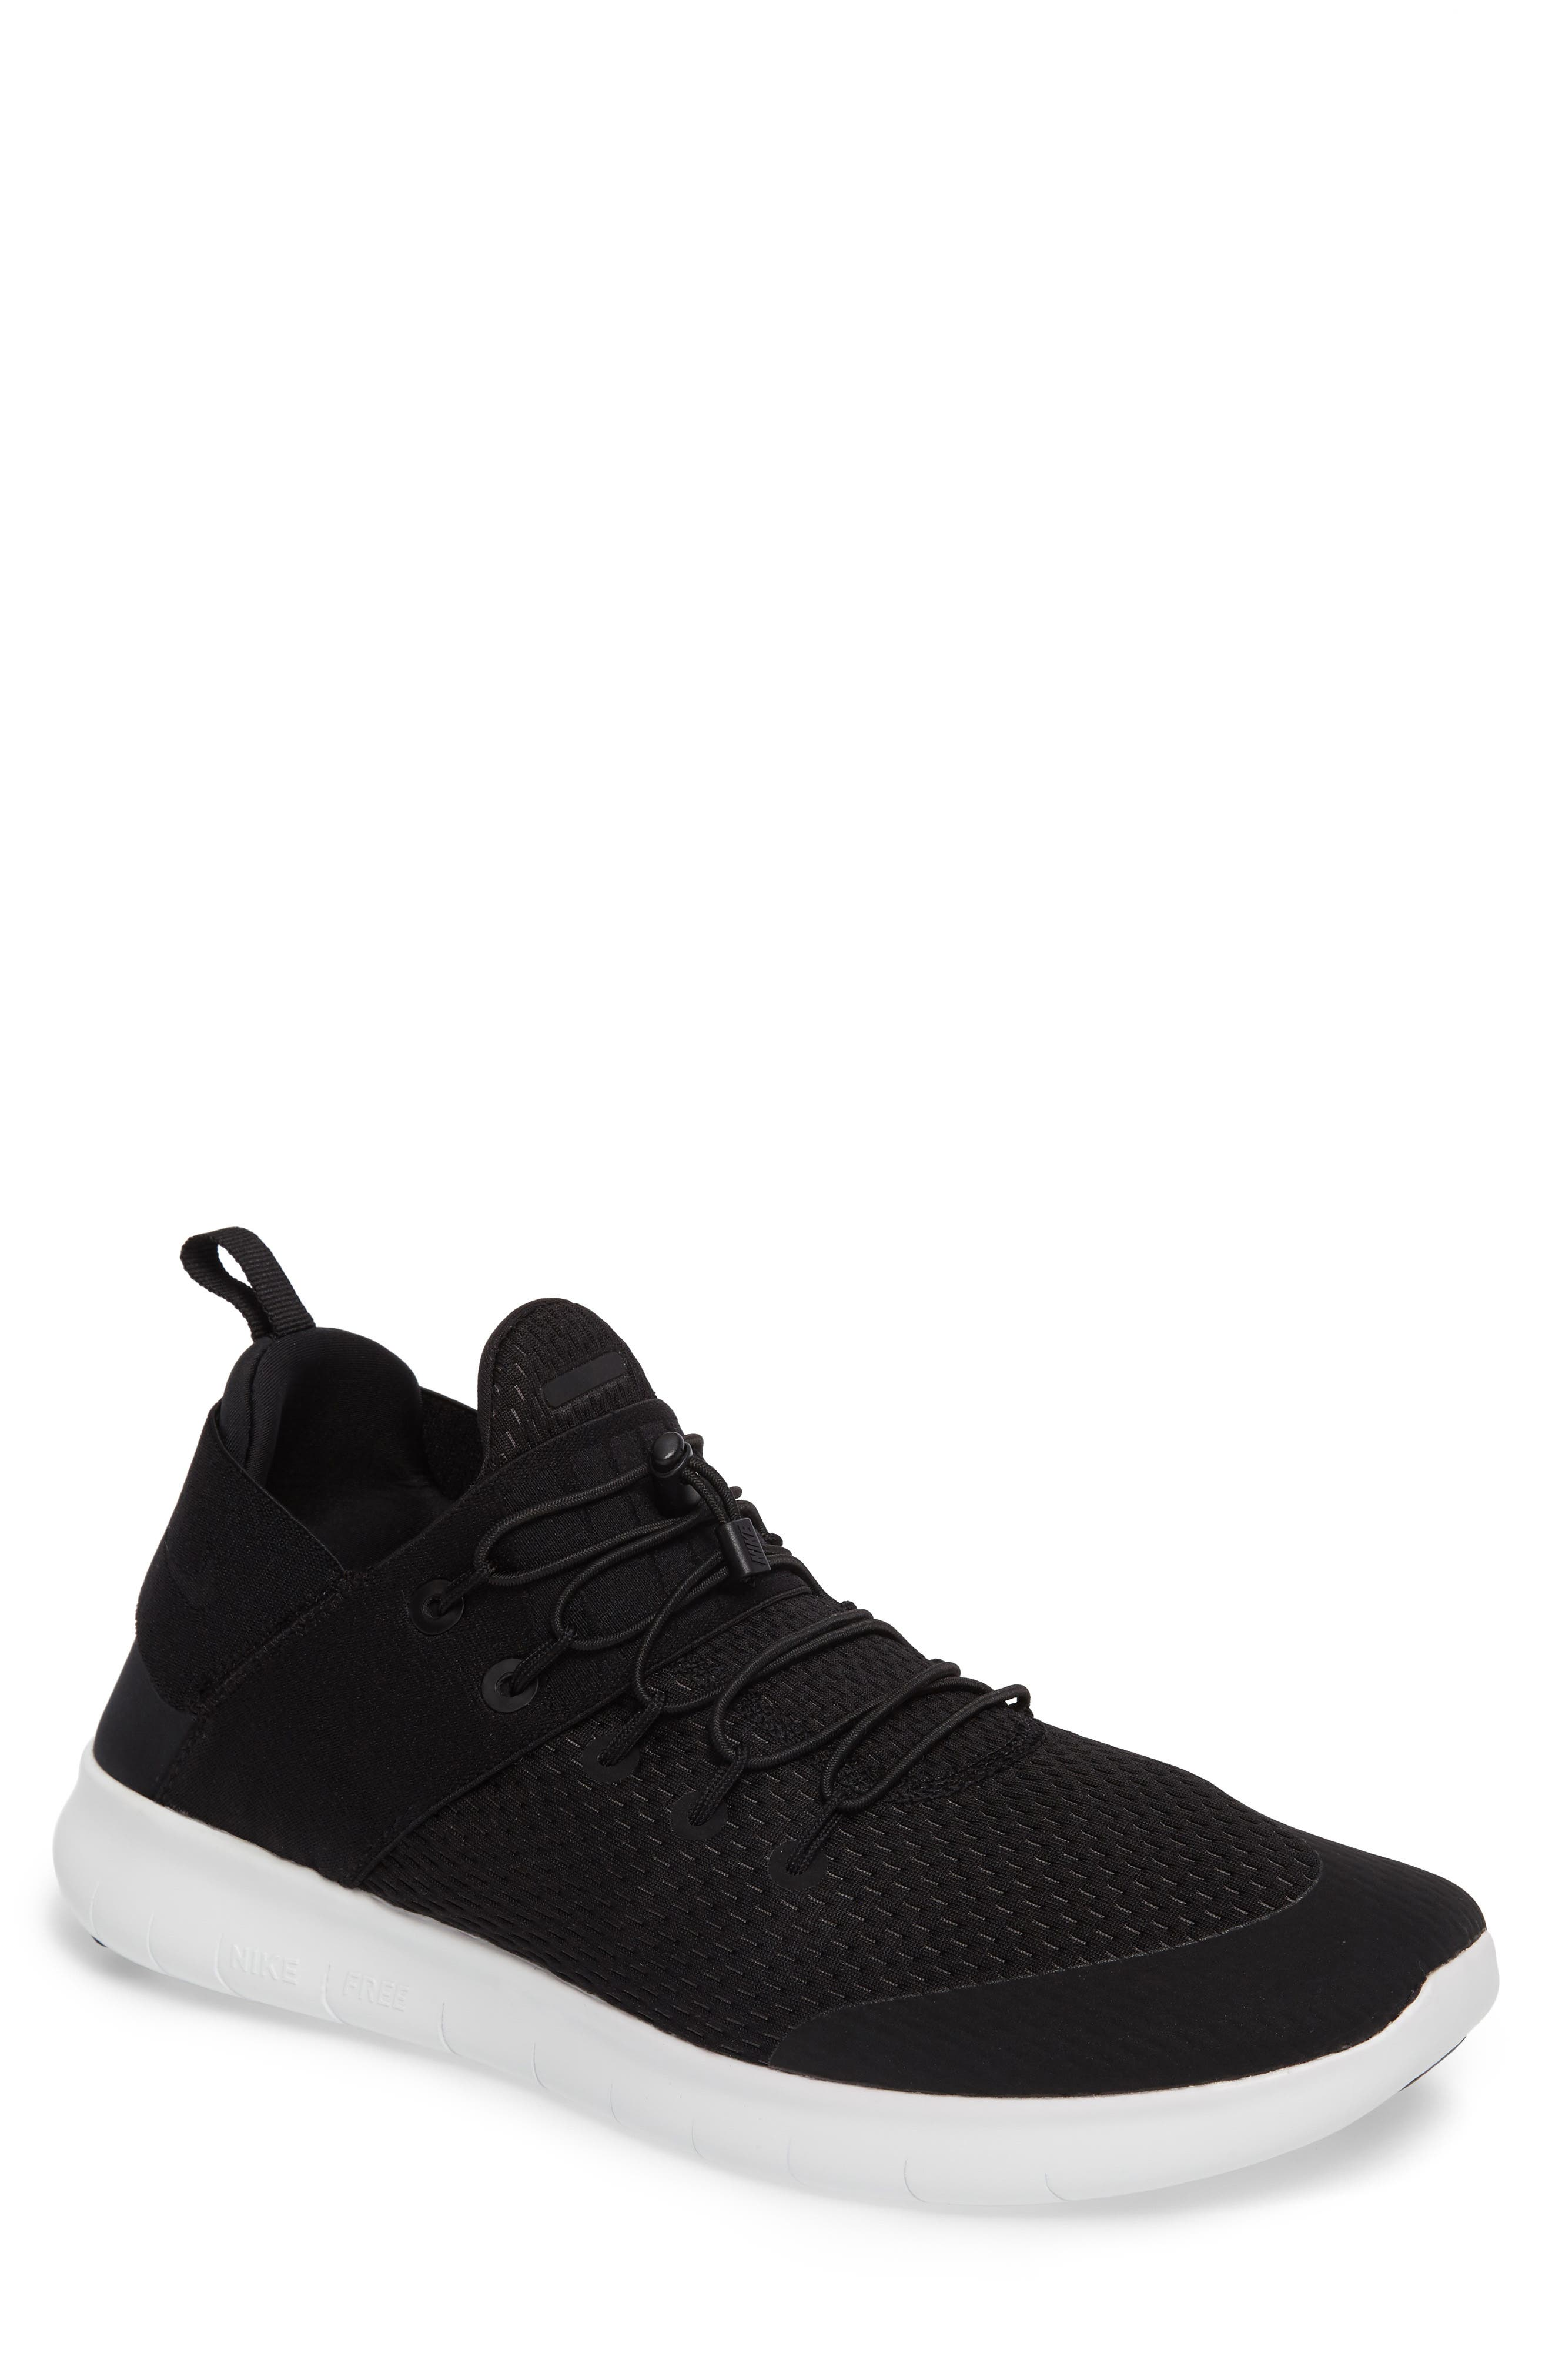 Free RN CMTR 2 Running Shoe,                             Main thumbnail 1, color,                             BLACK/ ANTHRACITE/ OFF WHITE